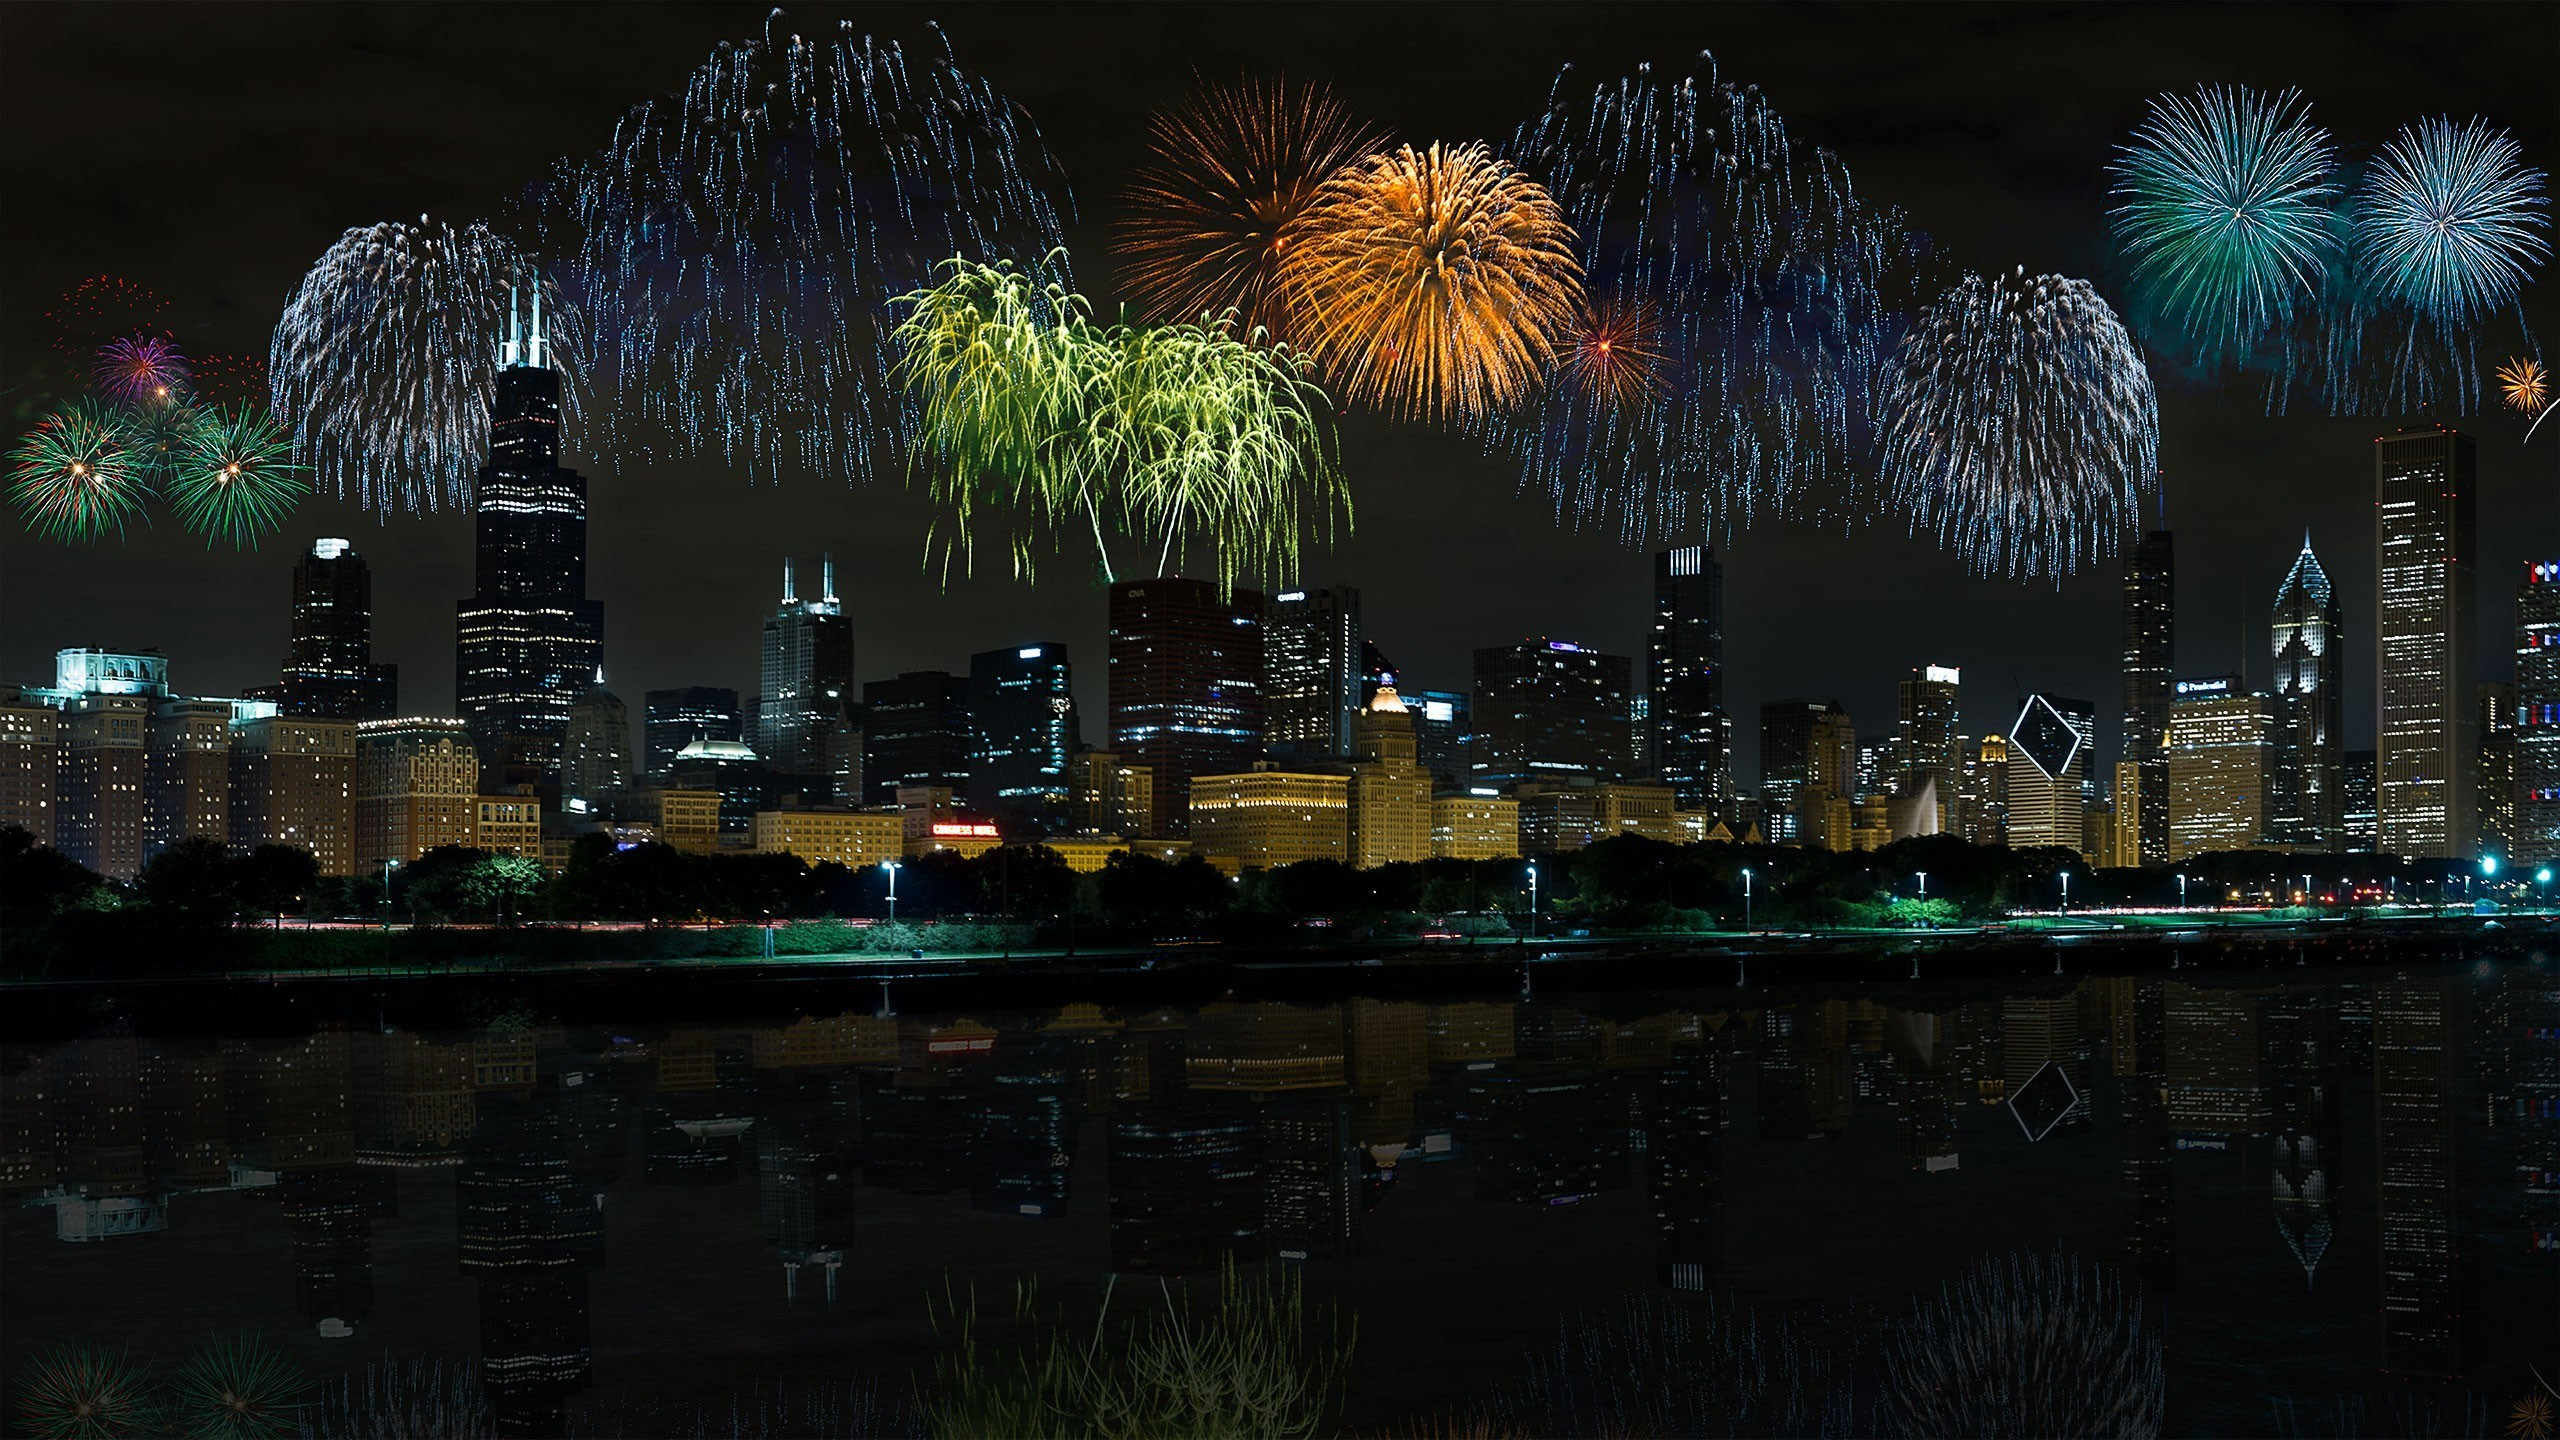 You photographed fireworks – now what?